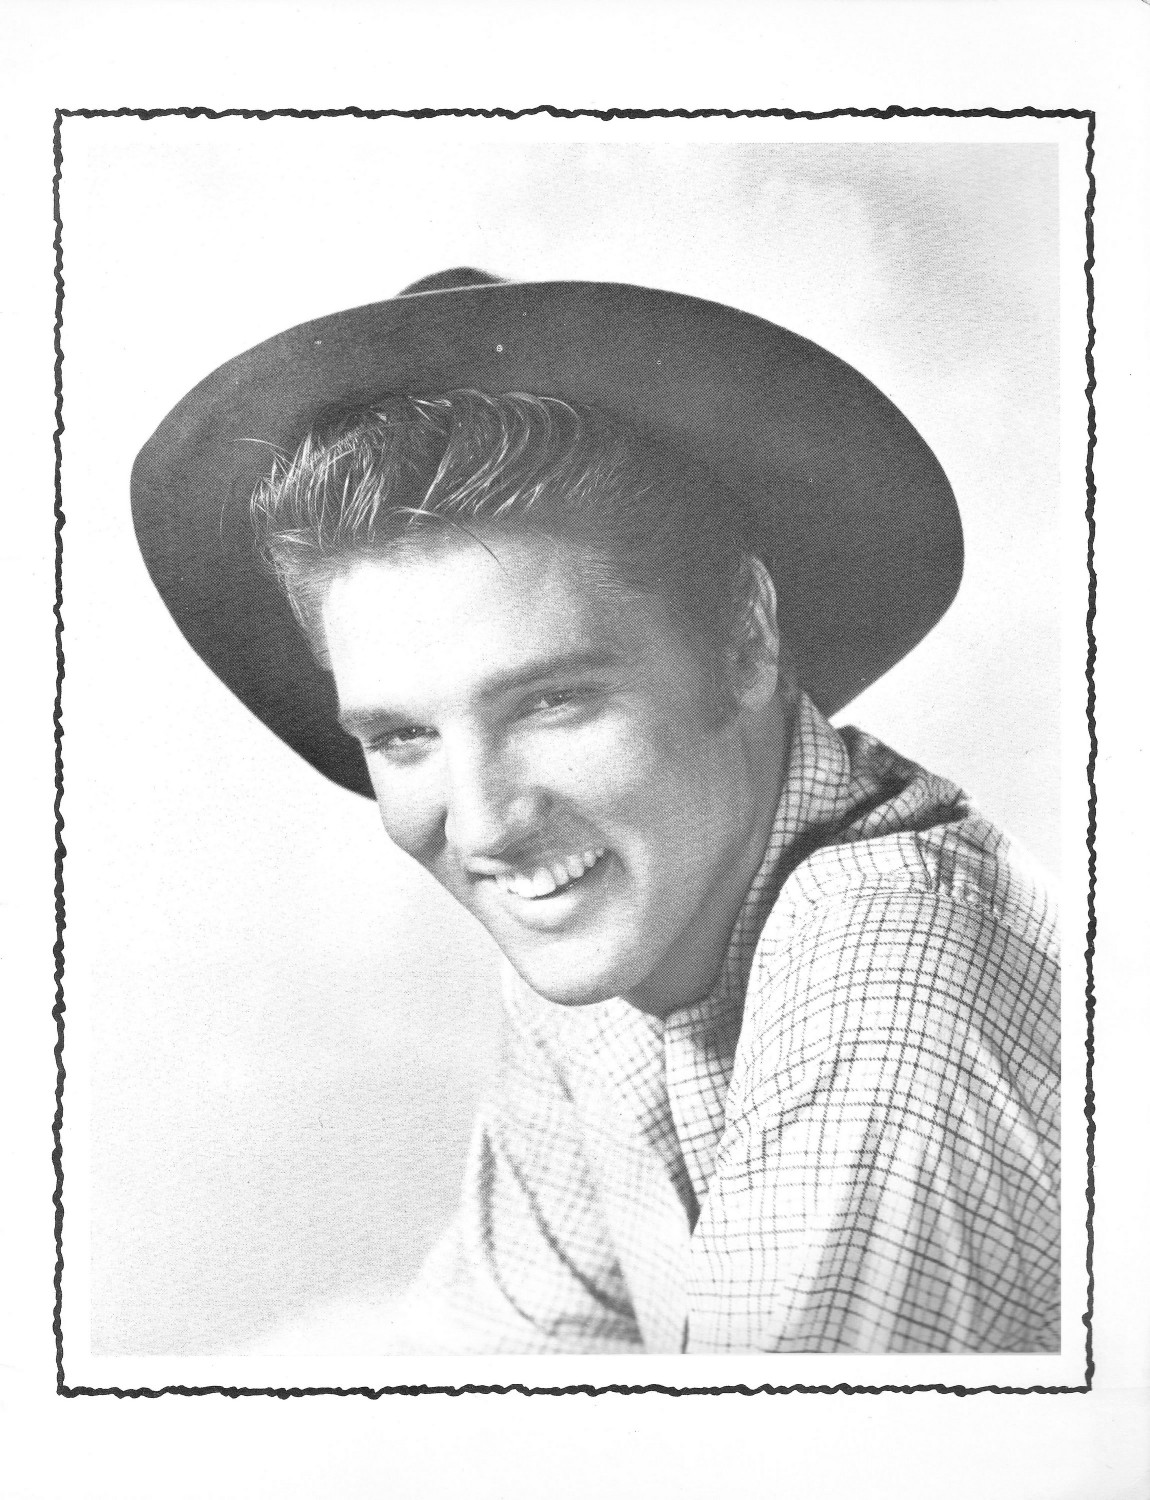 Elvis Presley Souvenir Photo Album (Juan Luis) 03